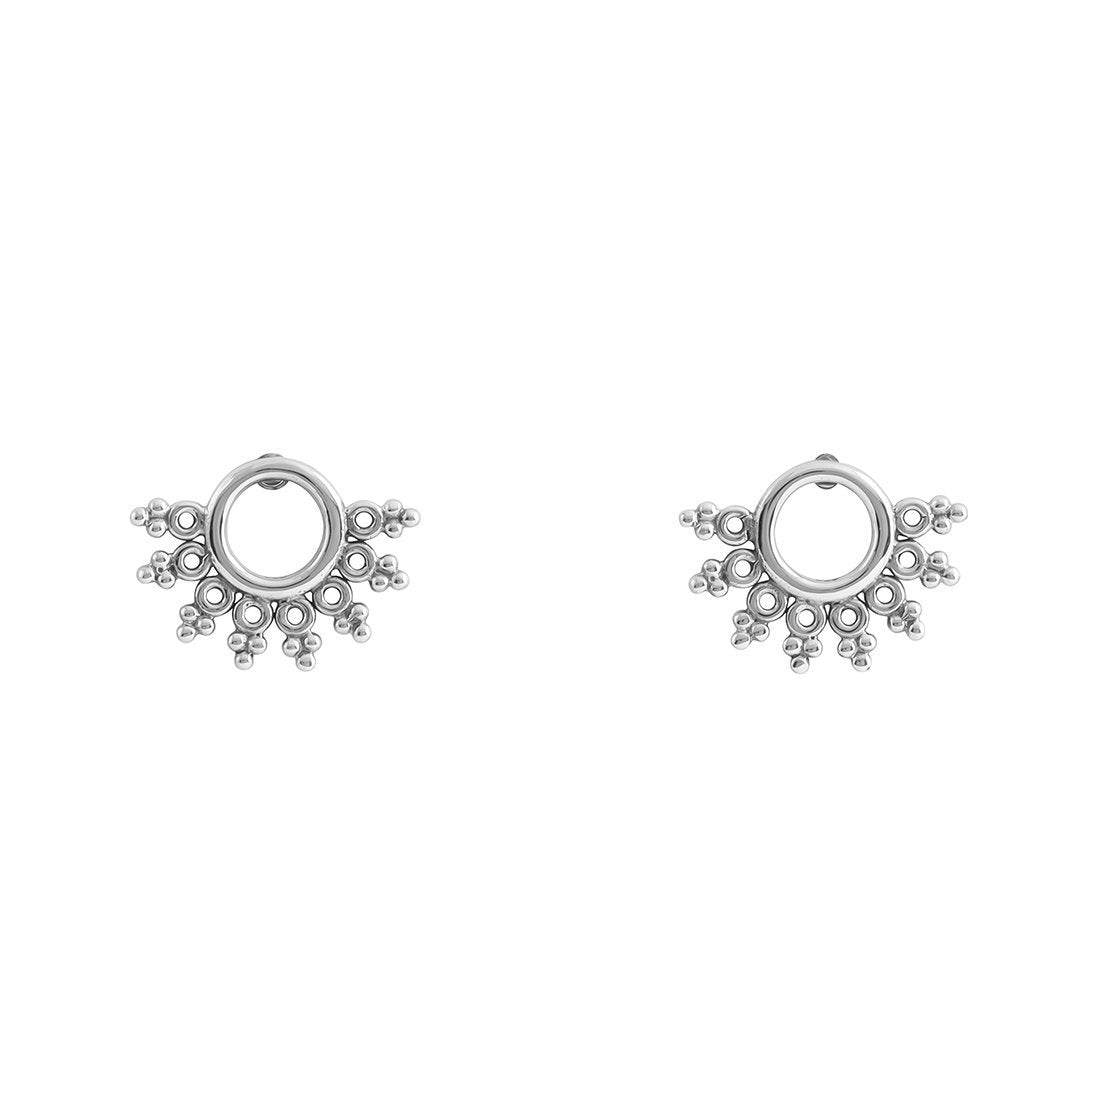 Midsummer Star Earrings Angara Studs